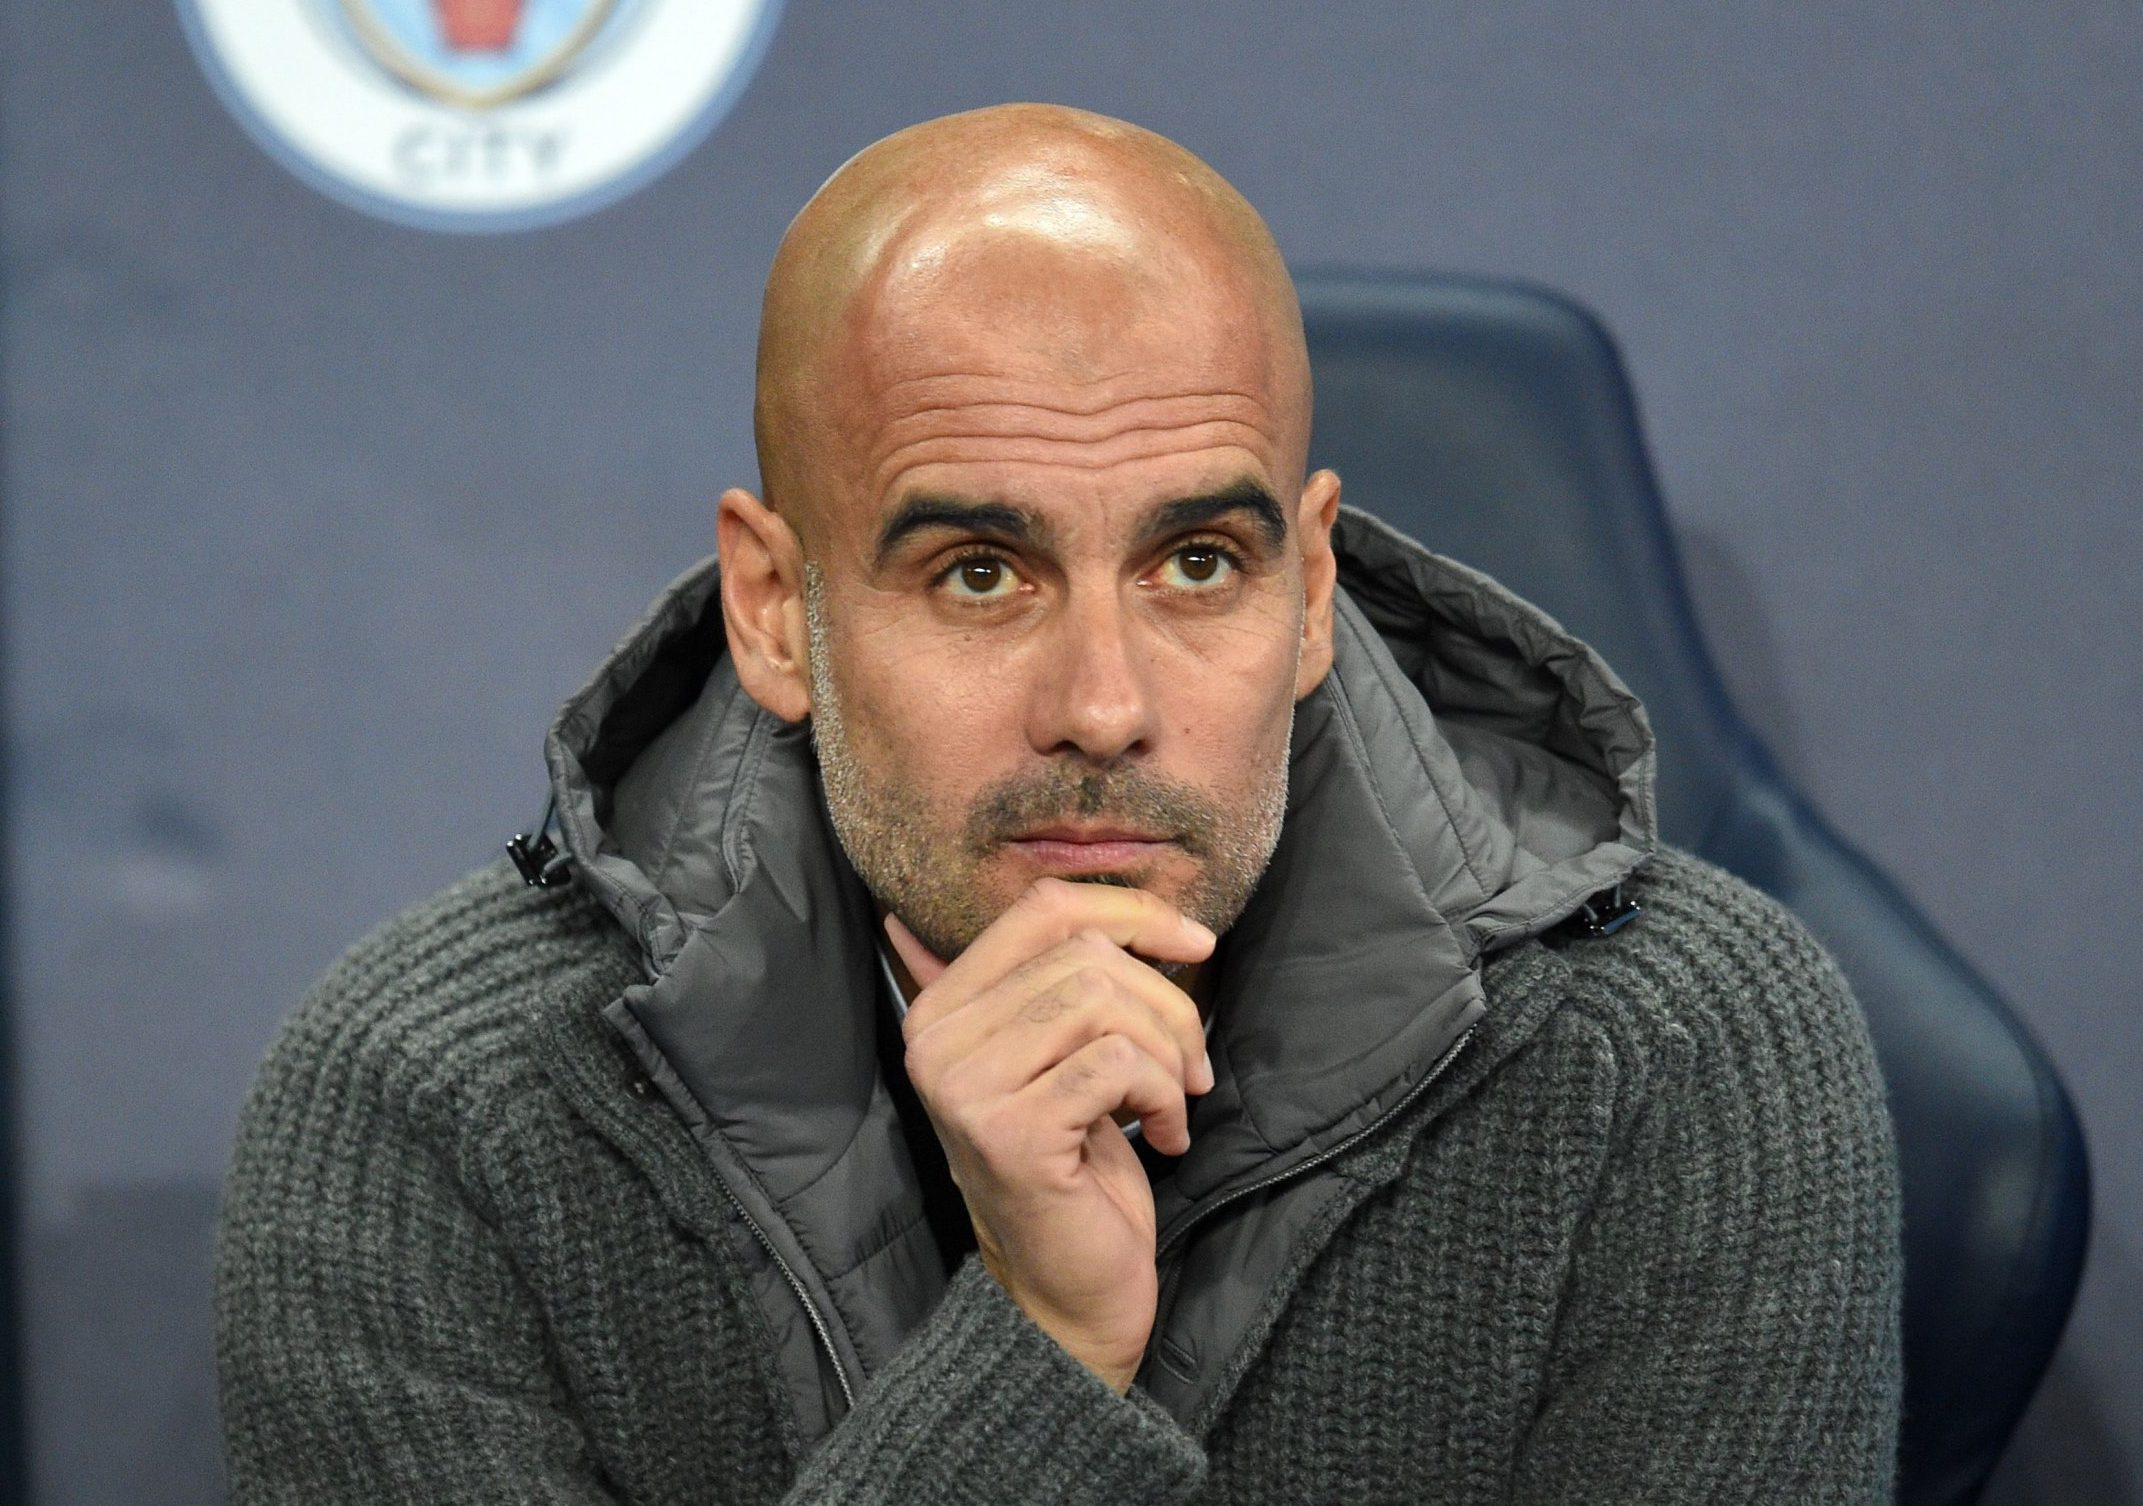 Mandatory Credit: Photo by Ryan Browne/BPI/REX (9970142bq) Pep Guardiola manager of Manchester City. Manchester City v Shakhtar Donetsk, UEFA Champions League Group F, Football, Etihad Stadium, Manchester, UK - 07 Nov 2018